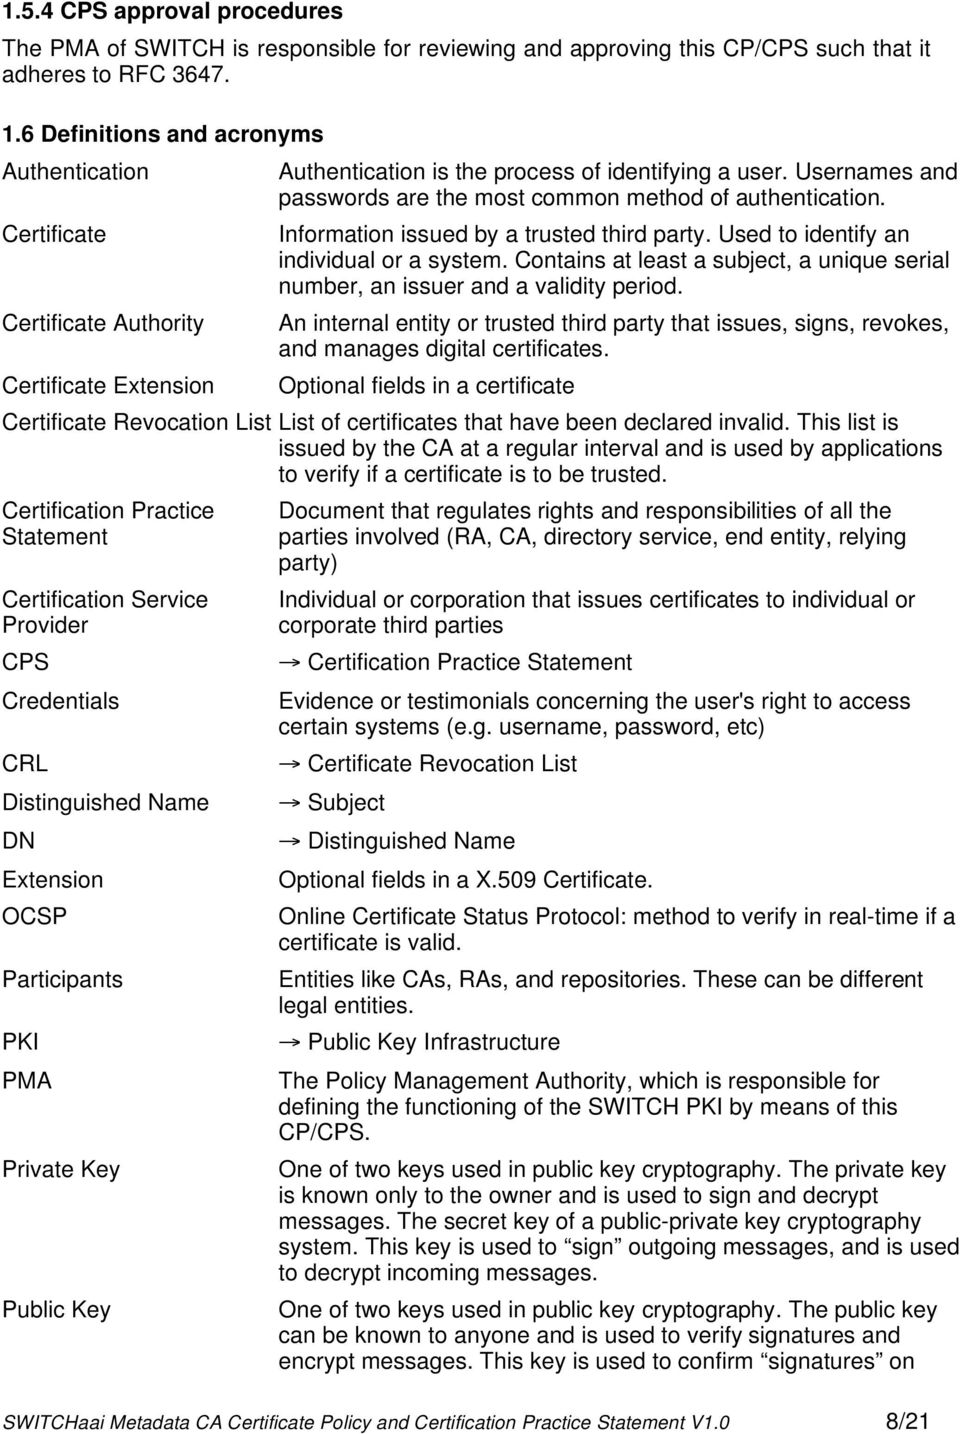 Certificate Information issued by a trusted third party. Used to identify an individual or a system. Contains at least a subject, a unique serial number, an issuer and a validity period.